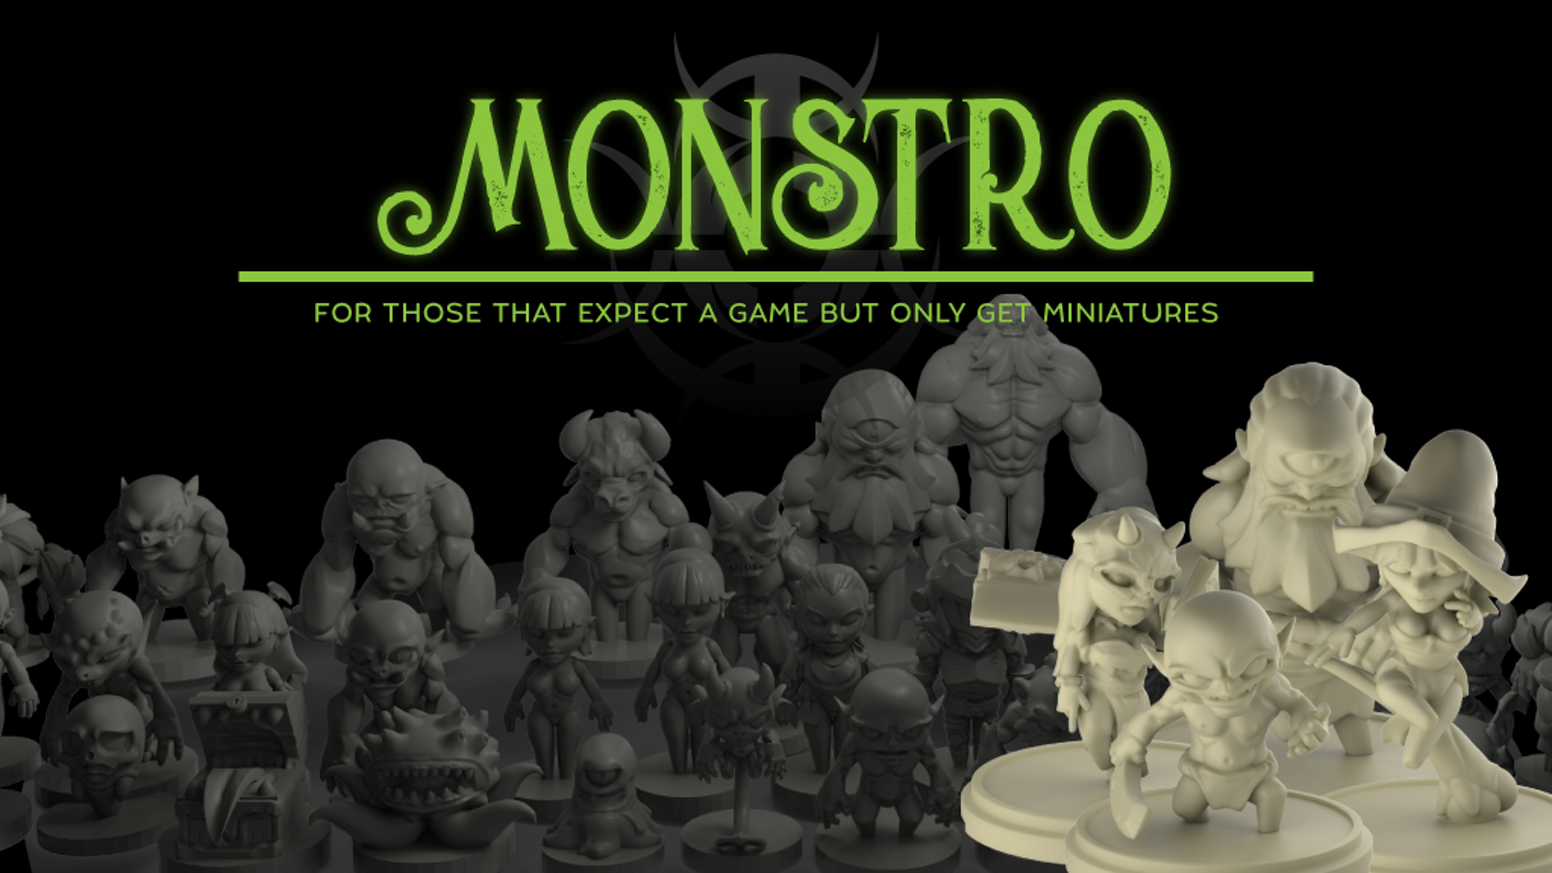 32mm chibi miniatures cast in high quality resin, made in-house and inspired by rpg games, DnD, and general tabletop gaming.